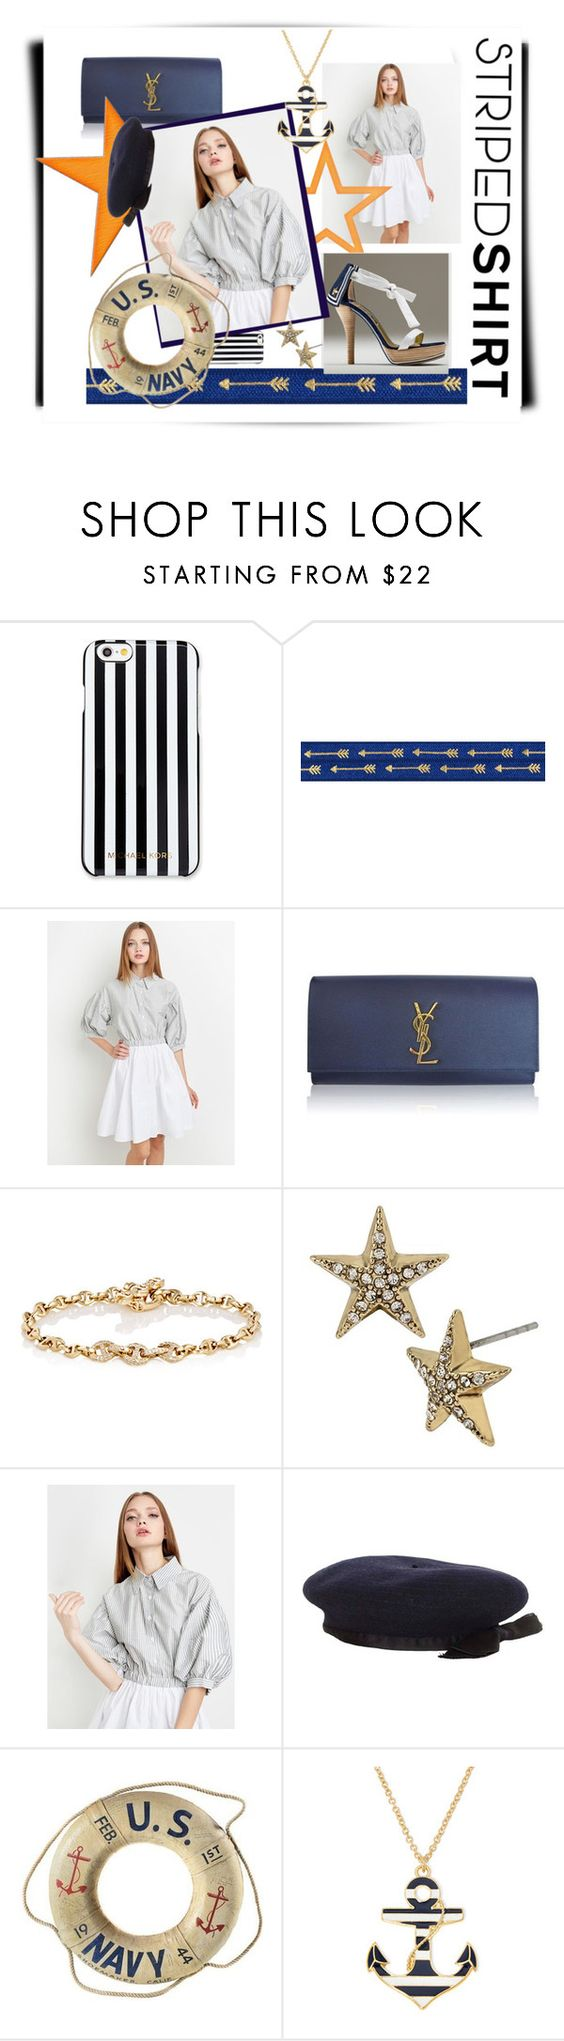 """""""Anchors Away!"""" by spotlight918 ❤ liked on Polyvore featuring MICHAEL Michael Kors, Alberto Guardiani, Yves Saint Laurent, Hoorsenbuhs, Betsey Johnson, Chanel and Liz Claiborne"""